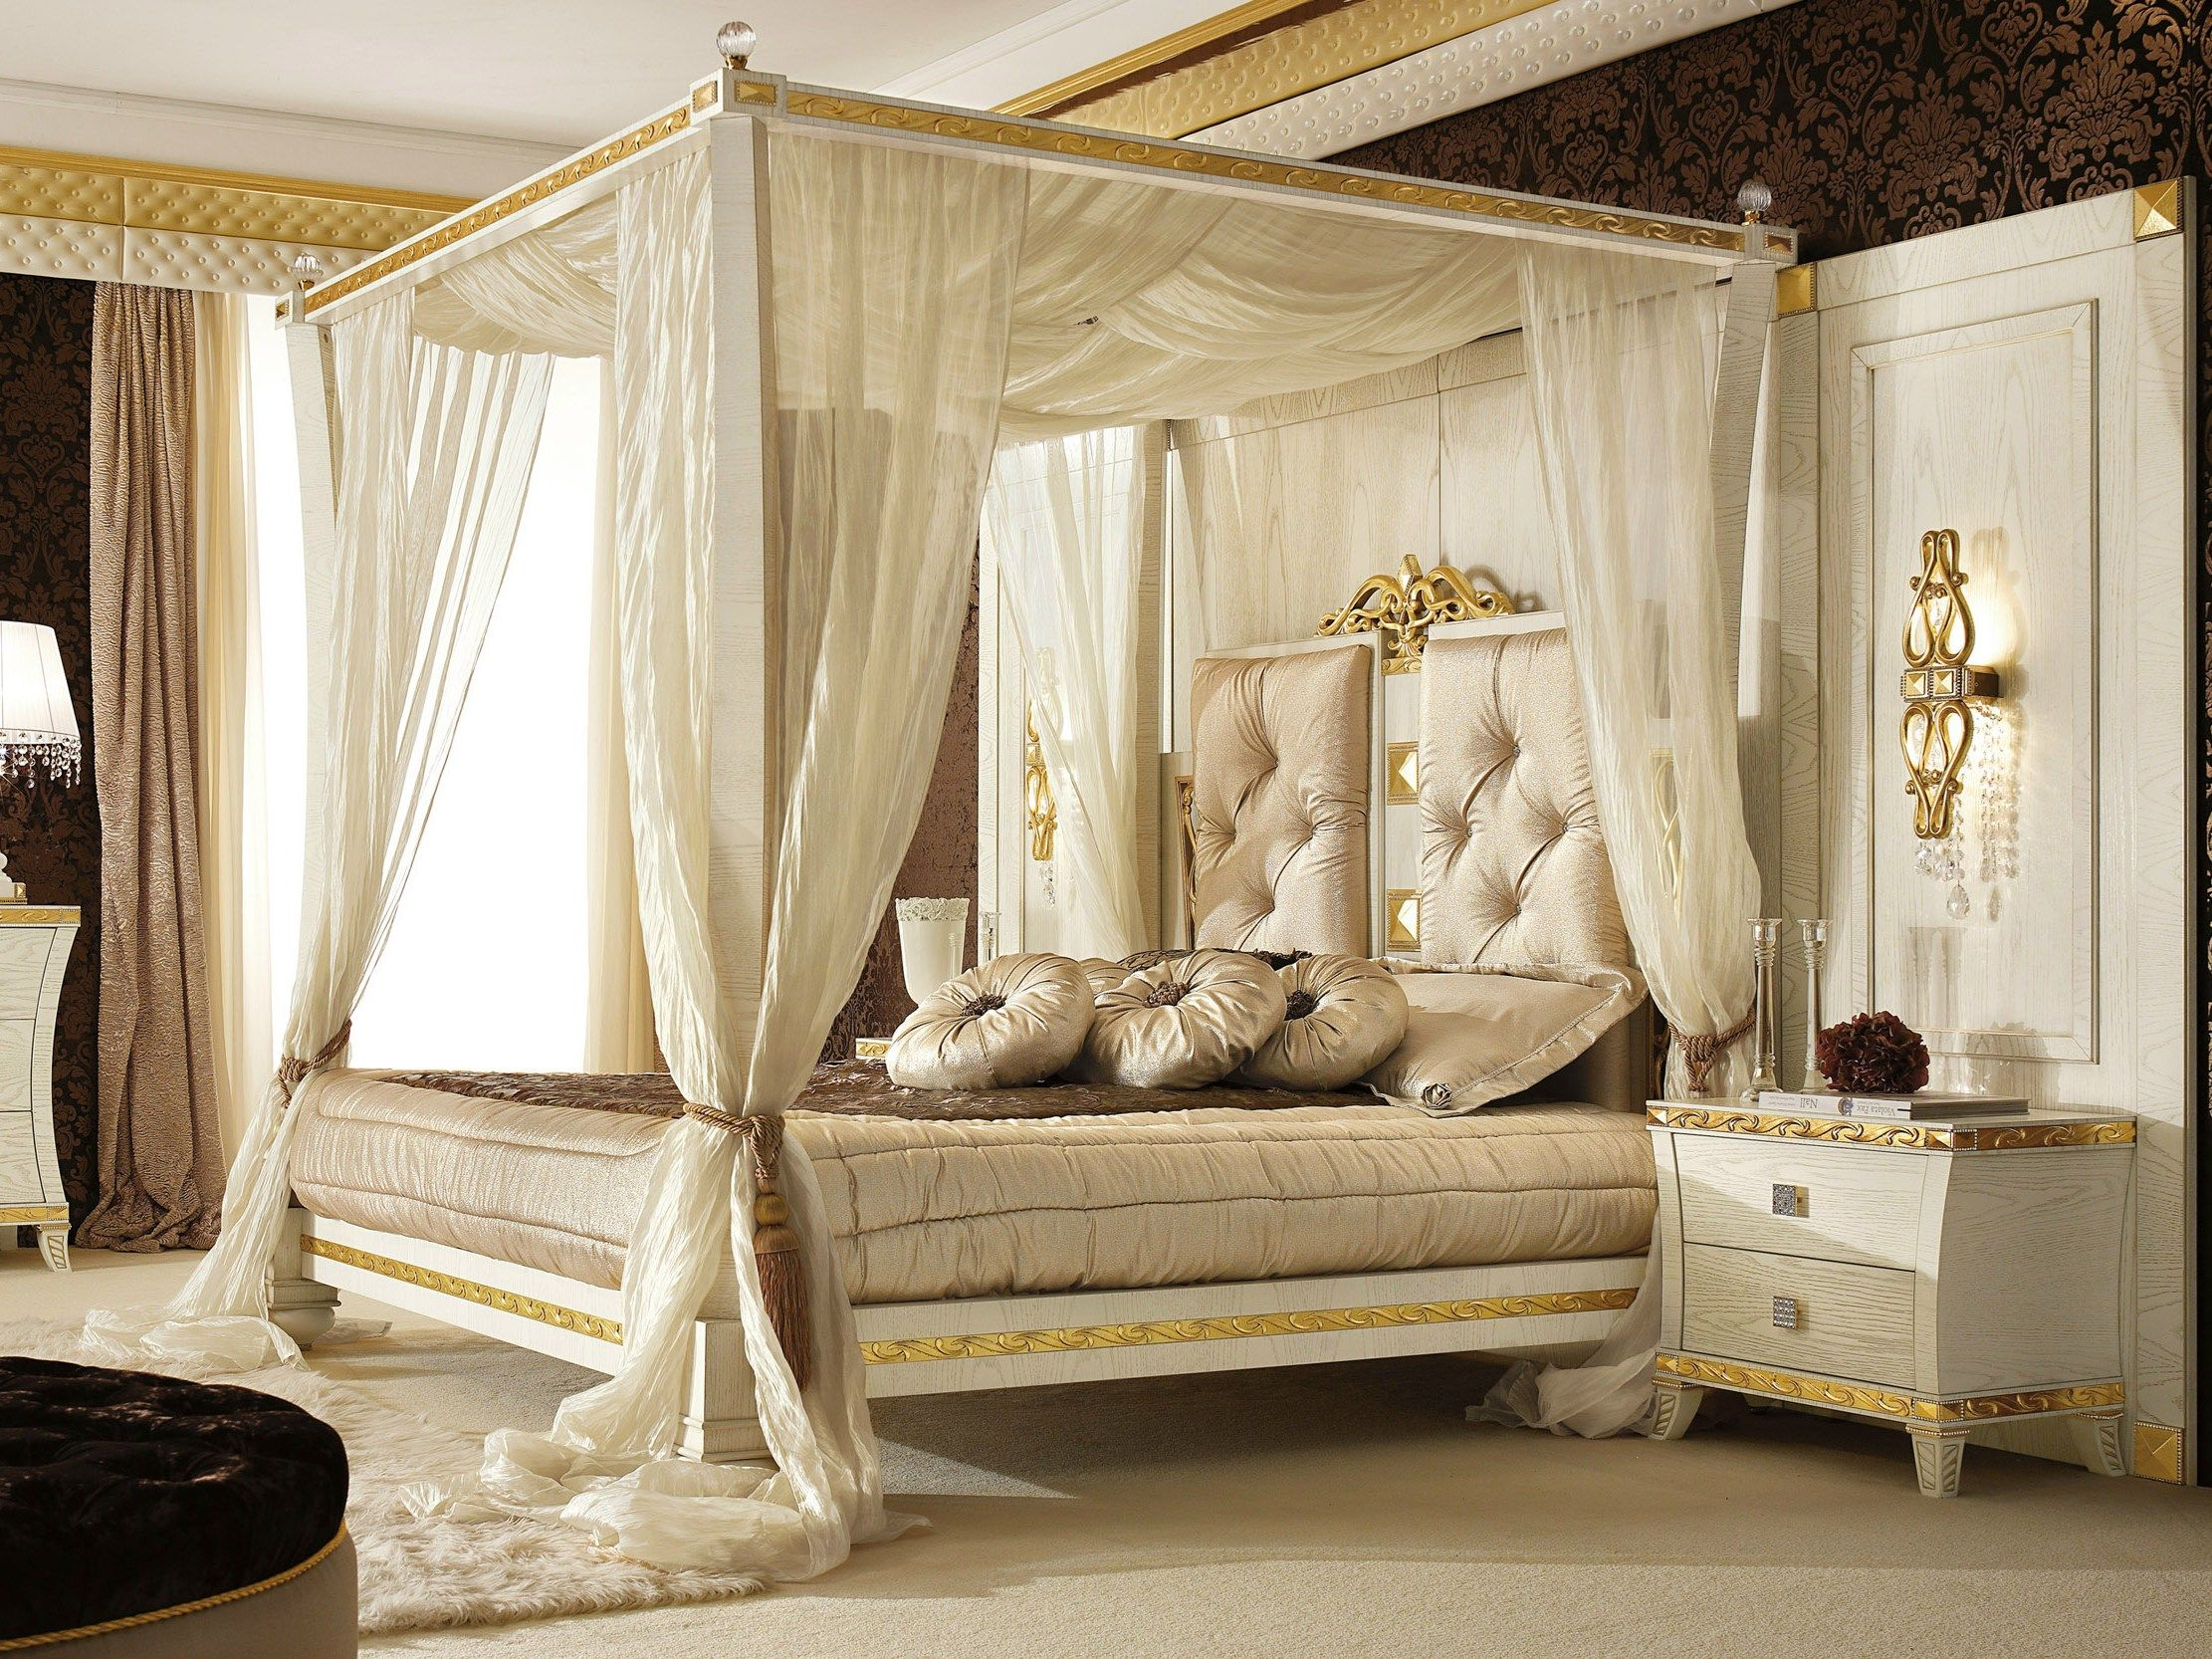 Bed canopy ideas - In This Opportunity We Will Share Some Information About Bed Canopy Design Canopy On